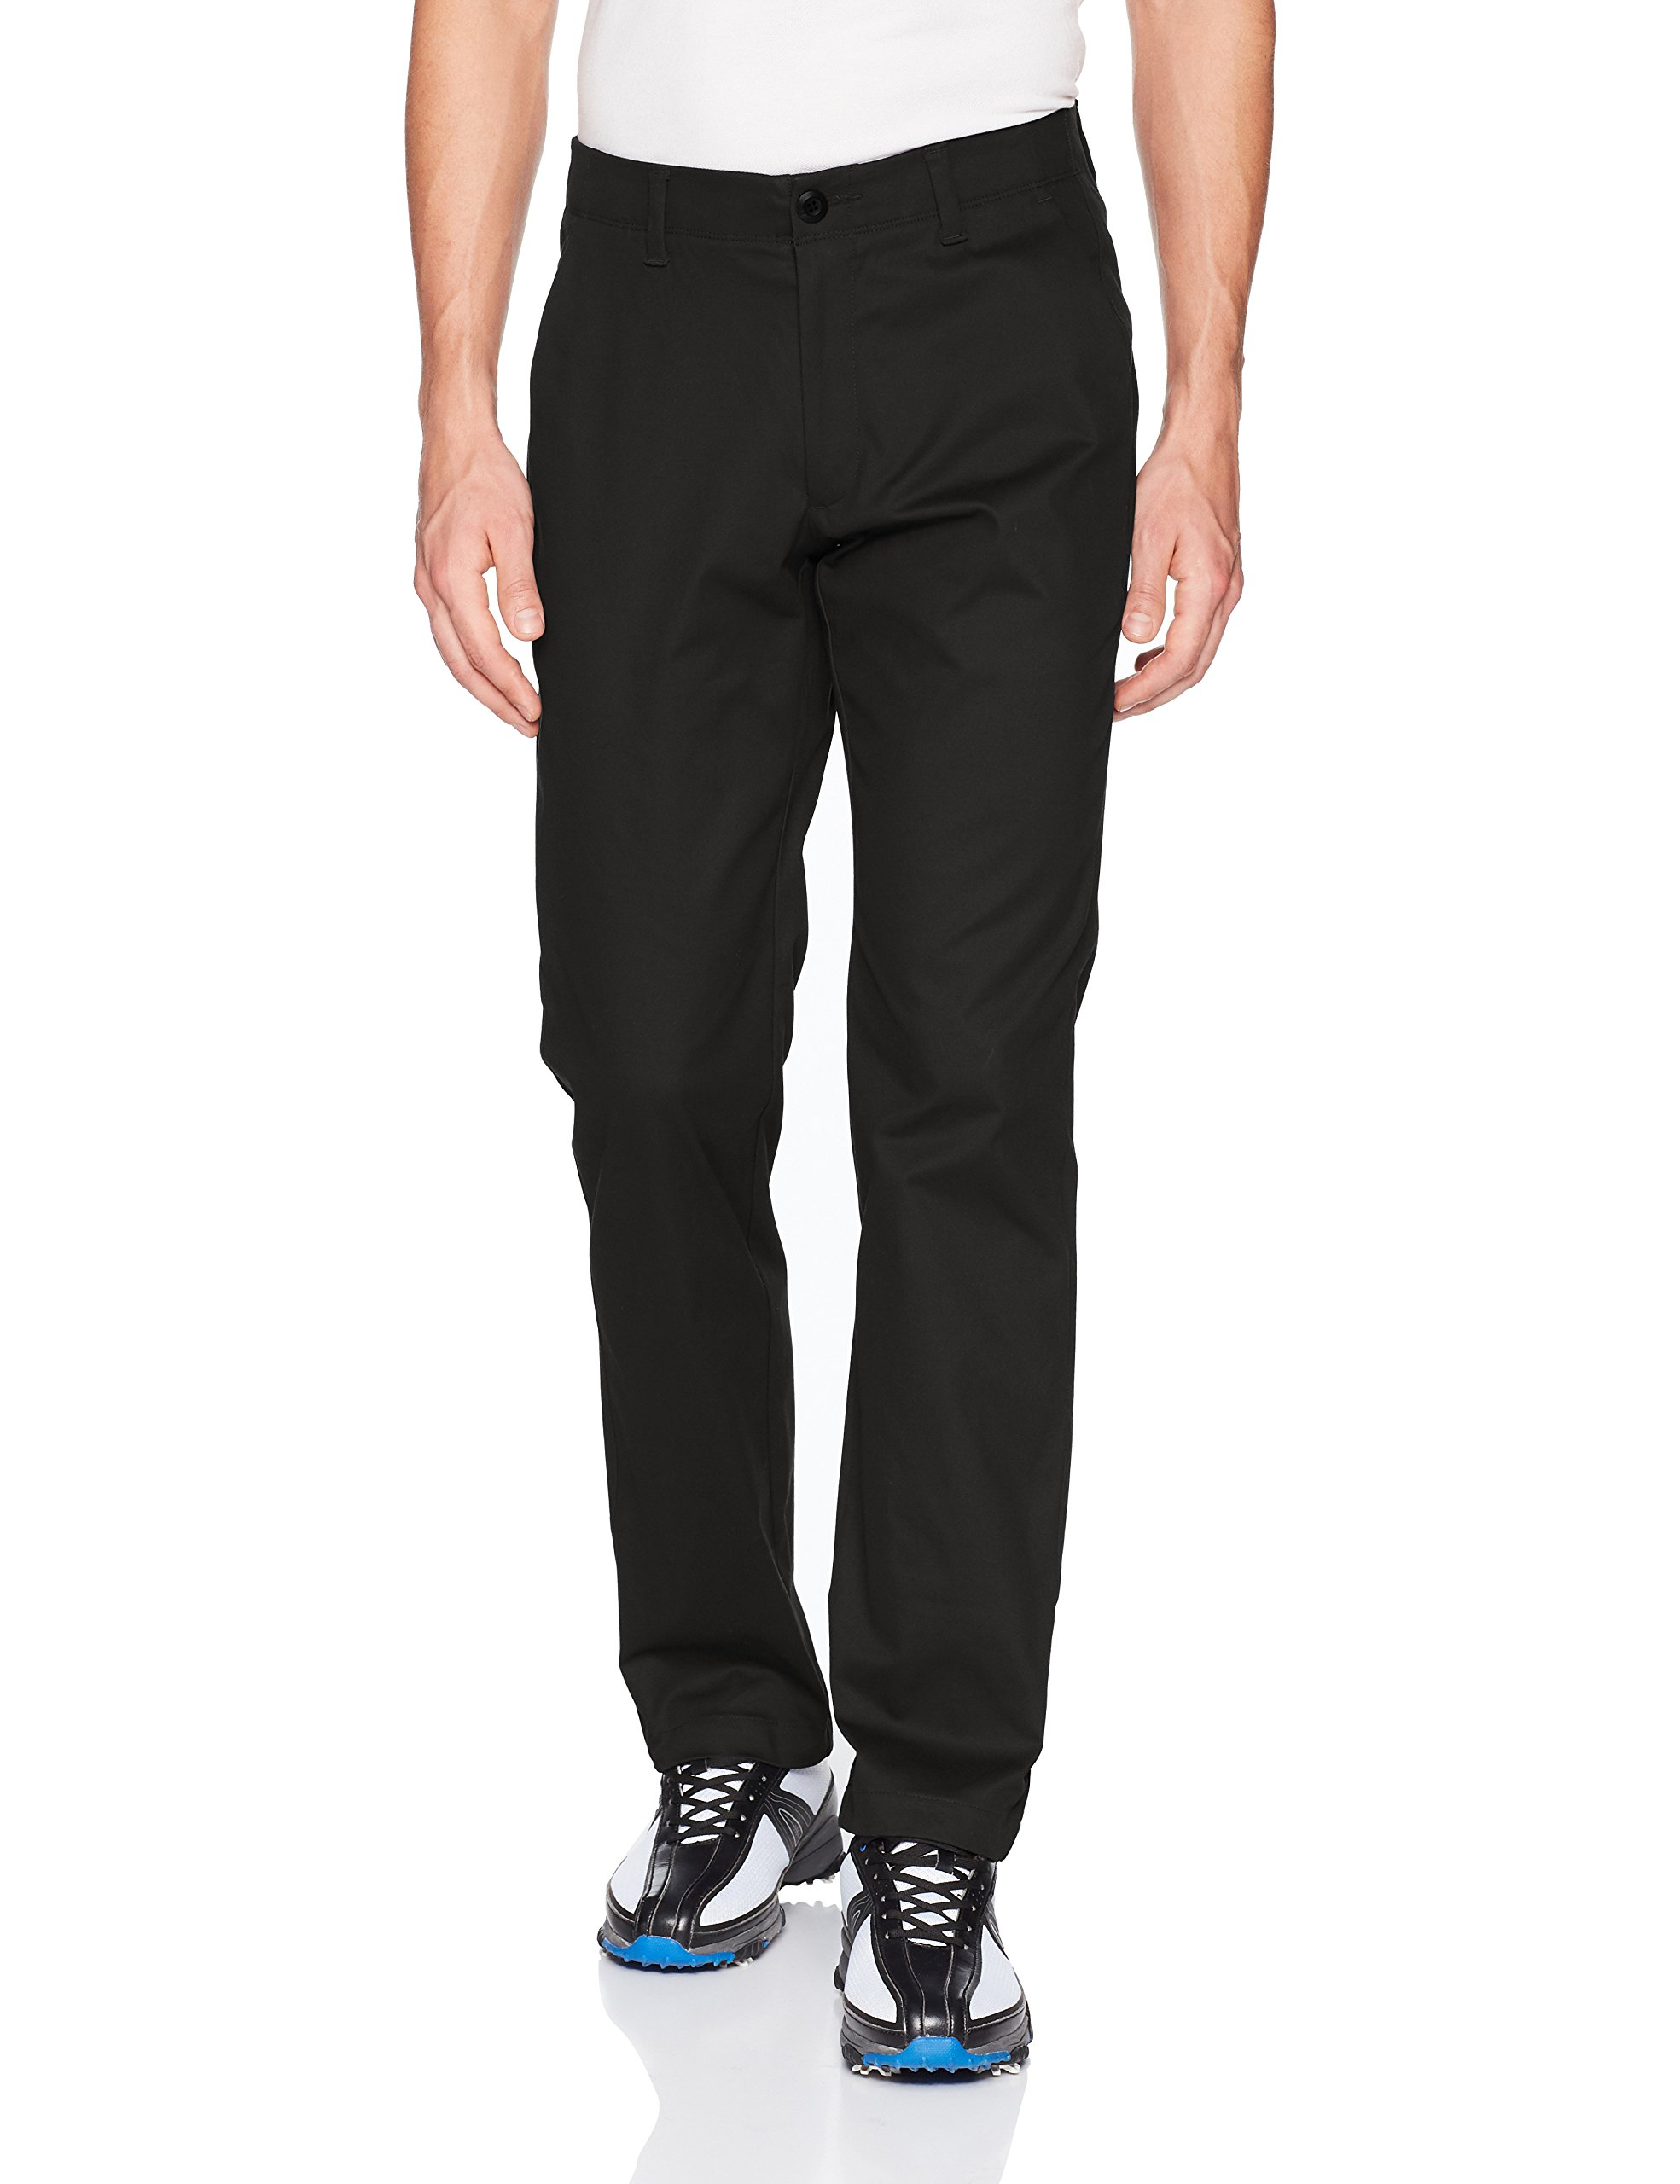 Under Armour Men's Showdown Chino Pants, Black (001)/Black, 40/32 by Under Armour